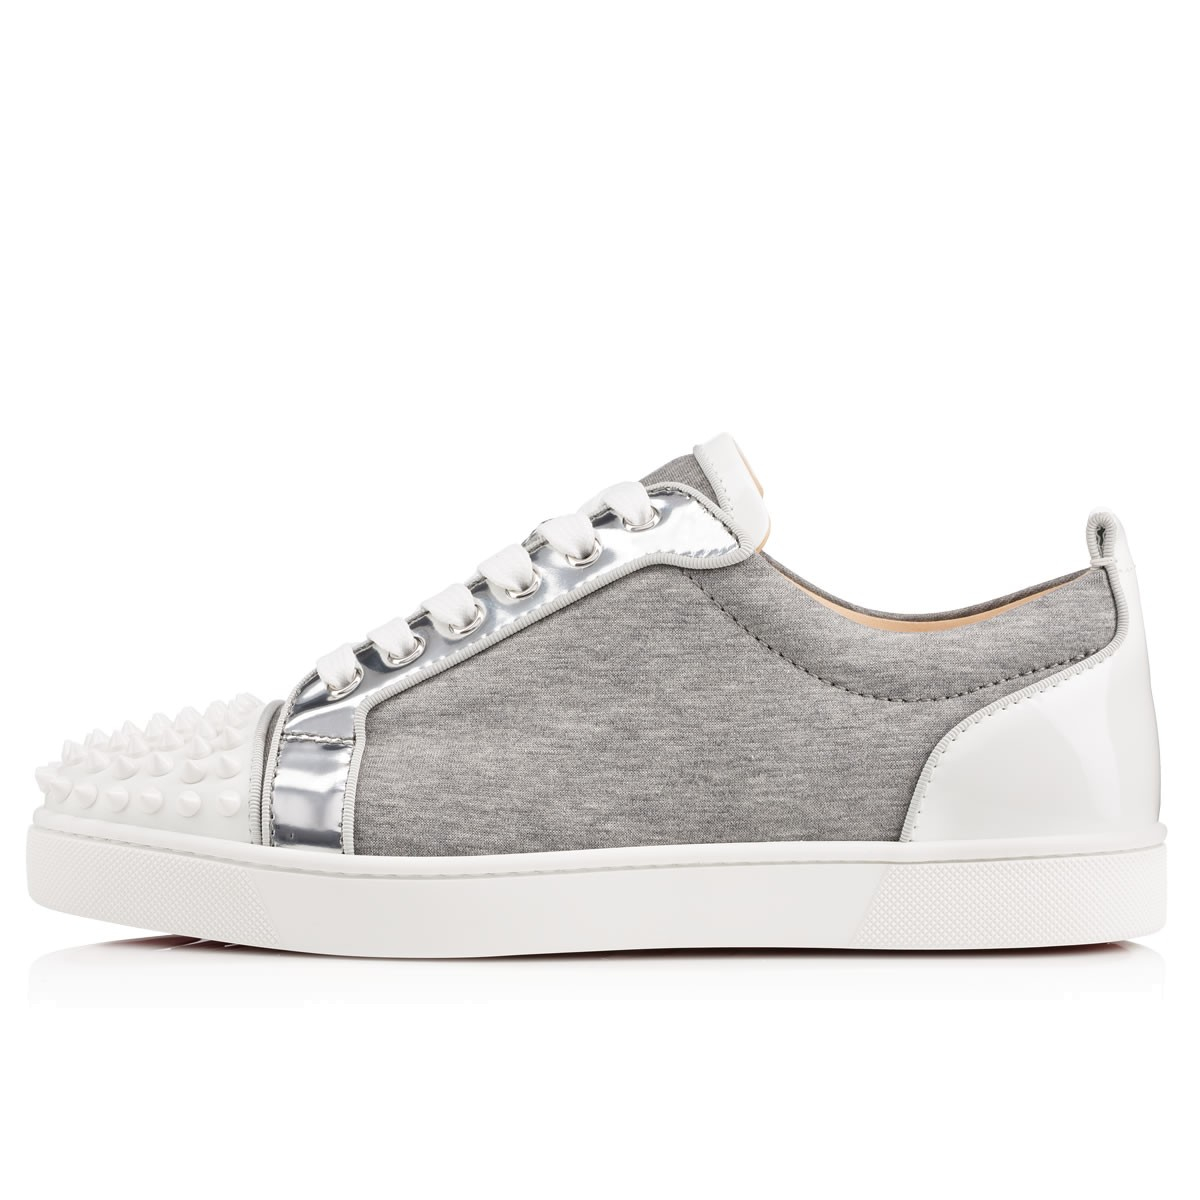 8cde405f8d4 Lyst - Christian Louboutin Louis Junior Spikes Mens Flat in Gray for Men